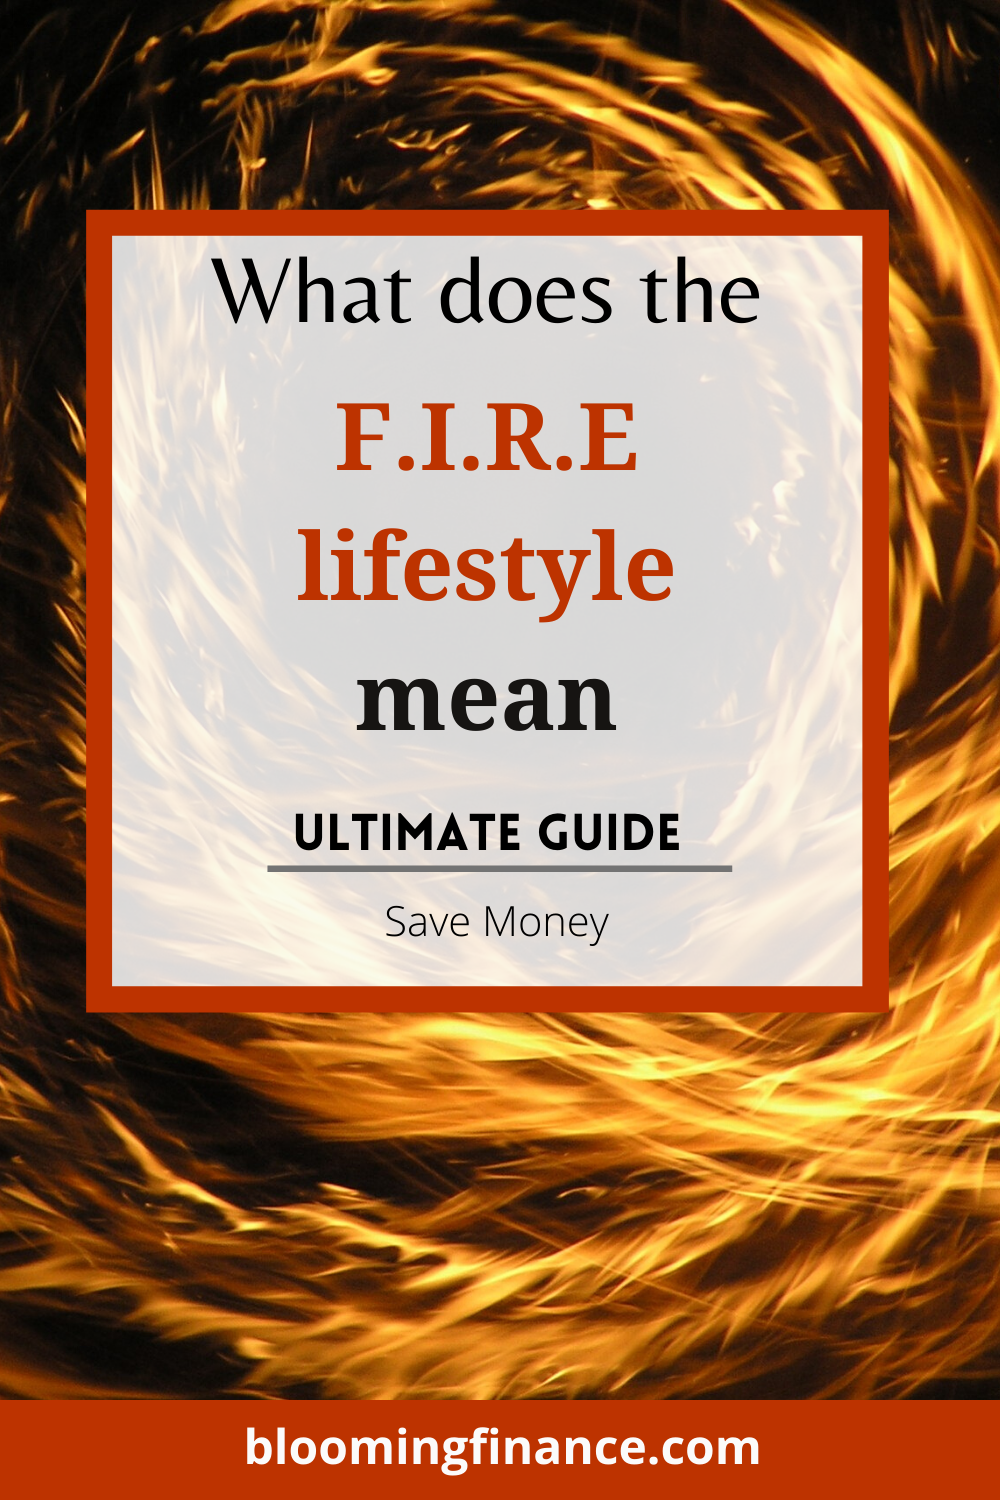 What does the fire lifestyle mean Financial Independence